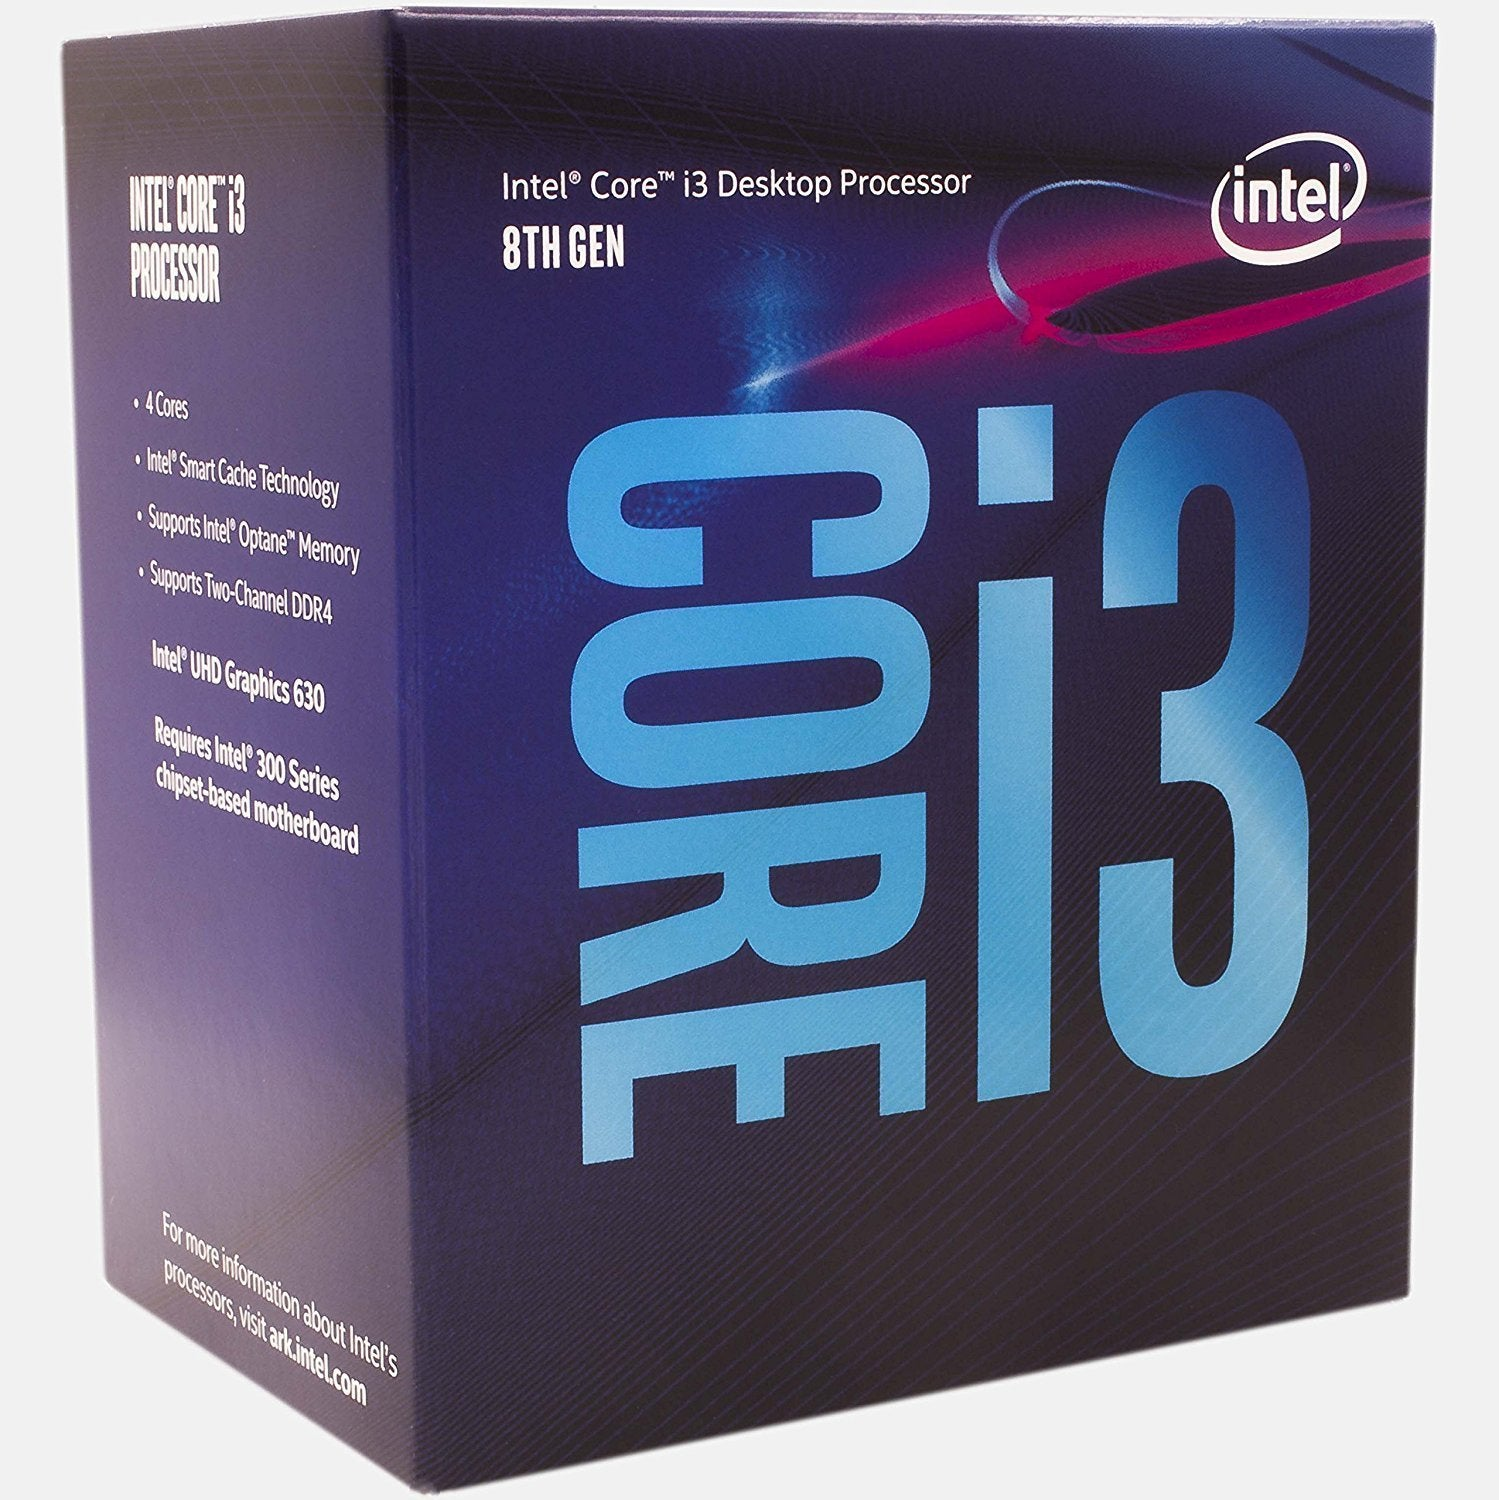 Intel Core i3-8100, 4 Cores, 3.6GHz LGA1151 CPU